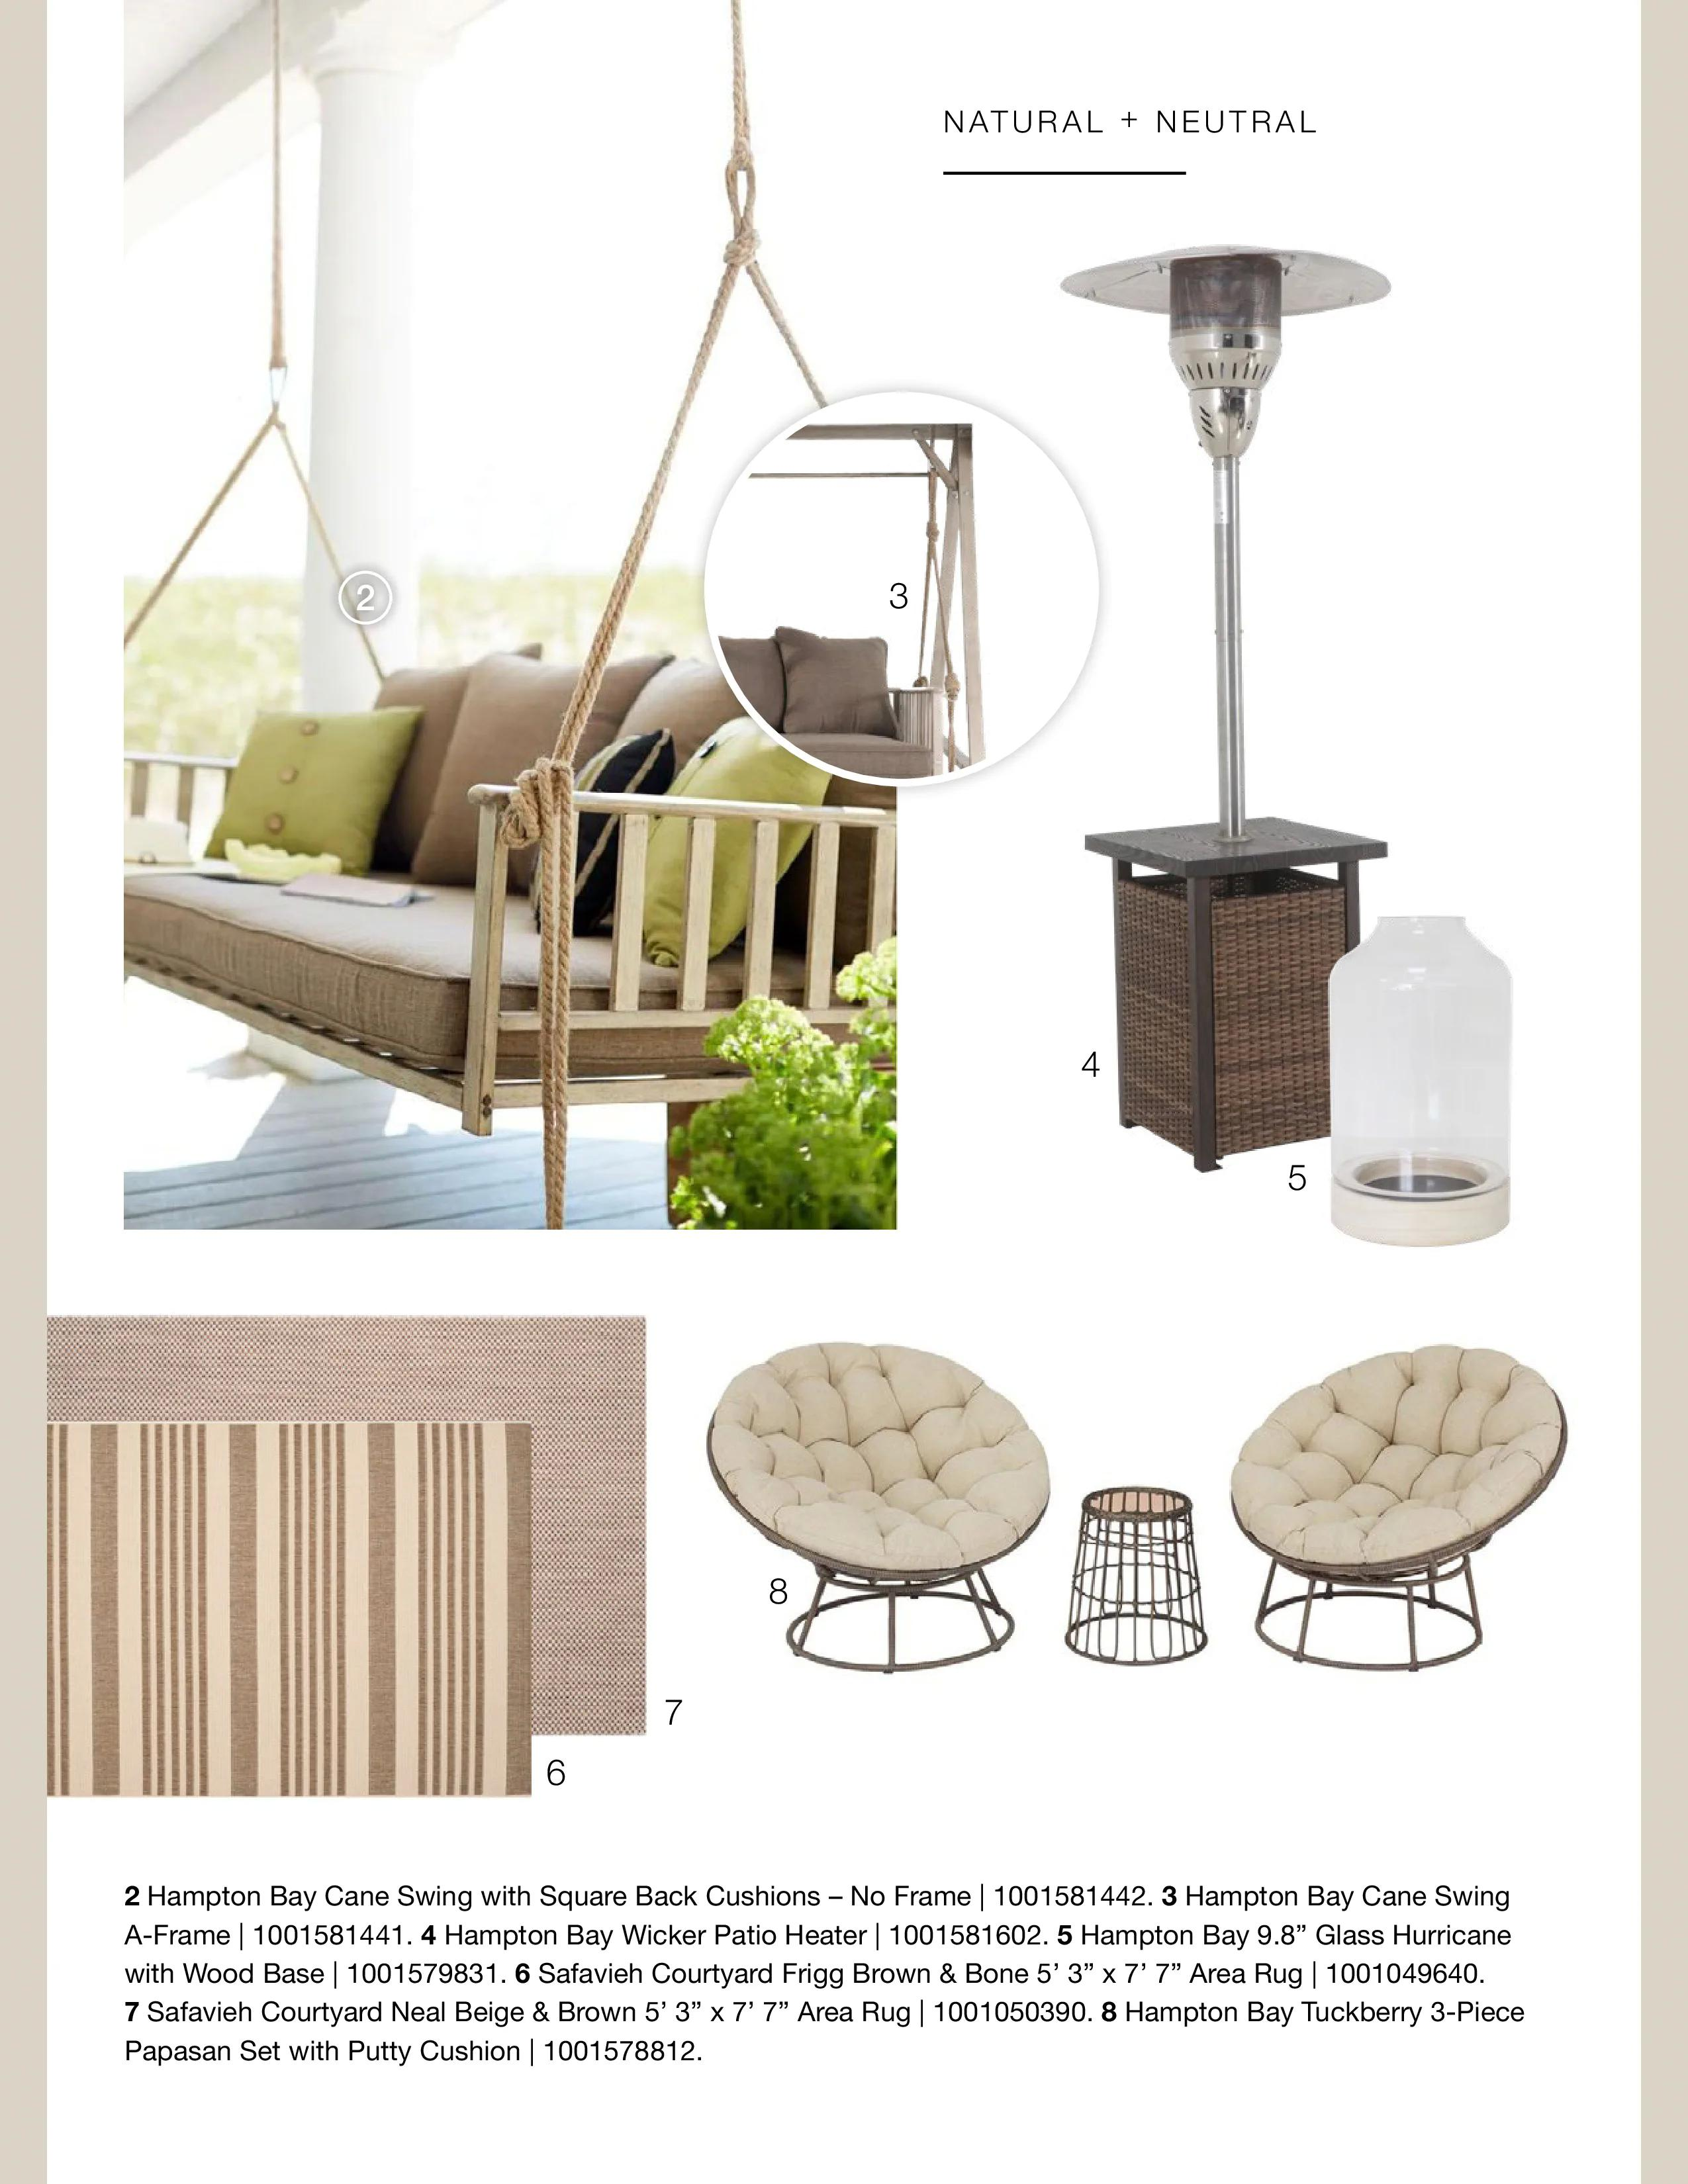 Home Depot - Outdoor Living - Page 25